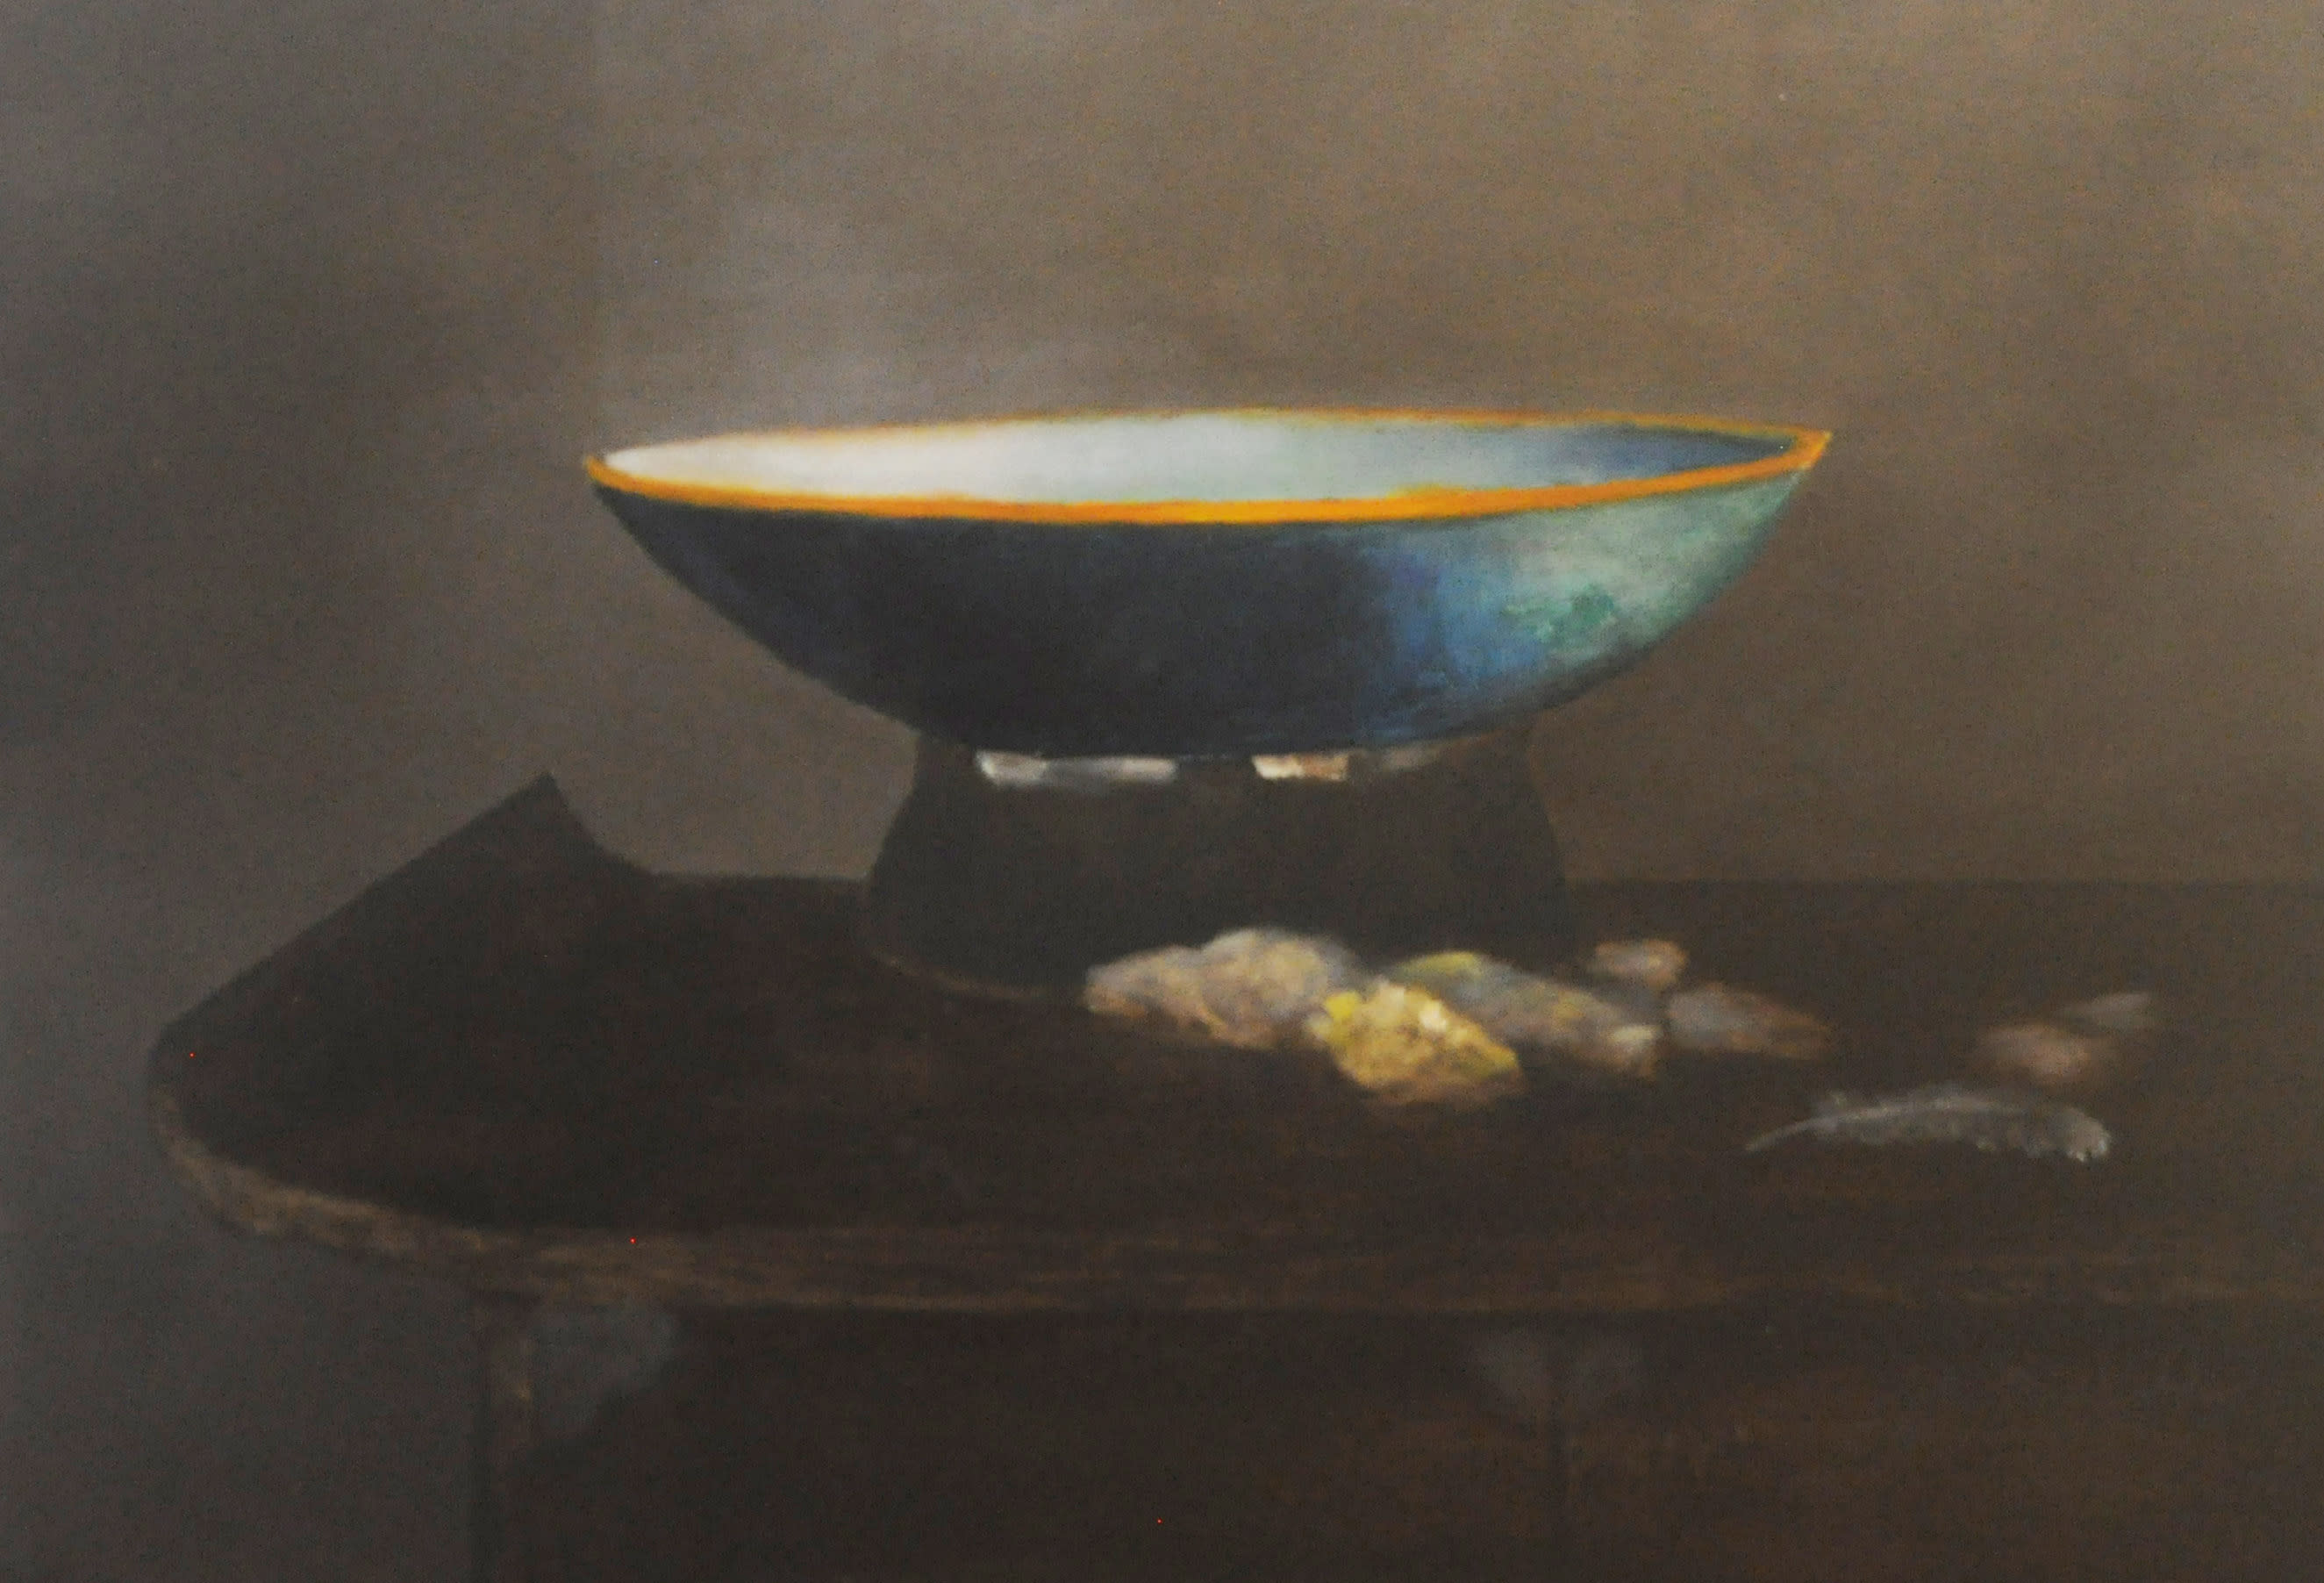 Illuminated bowl stones and feather onftbx